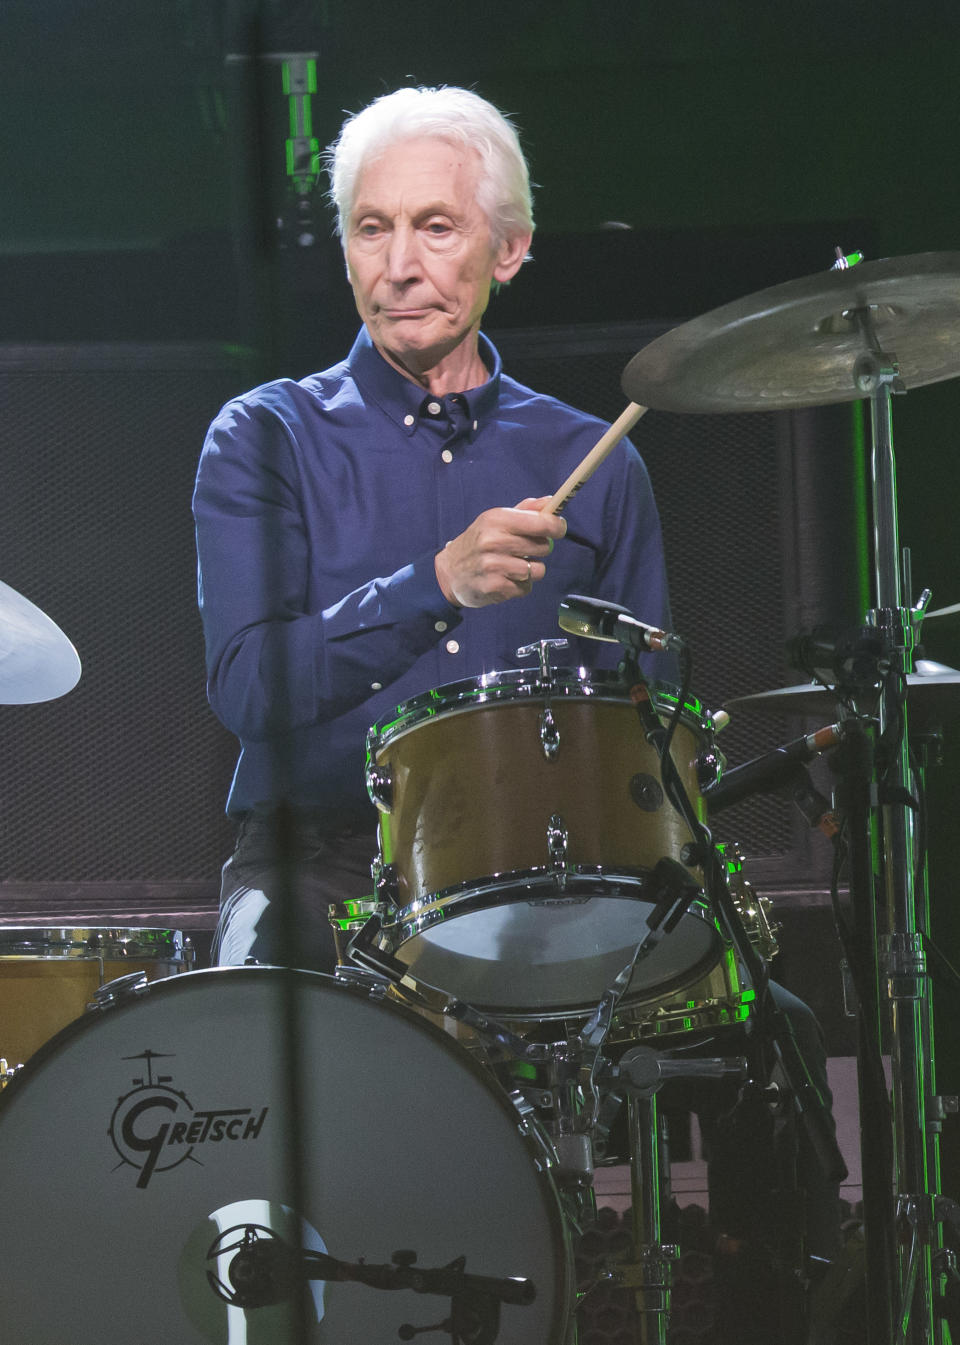 FILE - Charlie Watts of the Rolling Stones performs during the concert of their No Filter Europe Tour 2017 at U Arena in Nanterre, outside Paris, France, on Oct. 22, 2017. Watts' publicist, Bernard Doherty, said Watts passed away peacefully in a London hospital surrounded by his family on Tuesday, Aug. 24, 2021. He was 80. (AP Photo/Michel Euler, File)